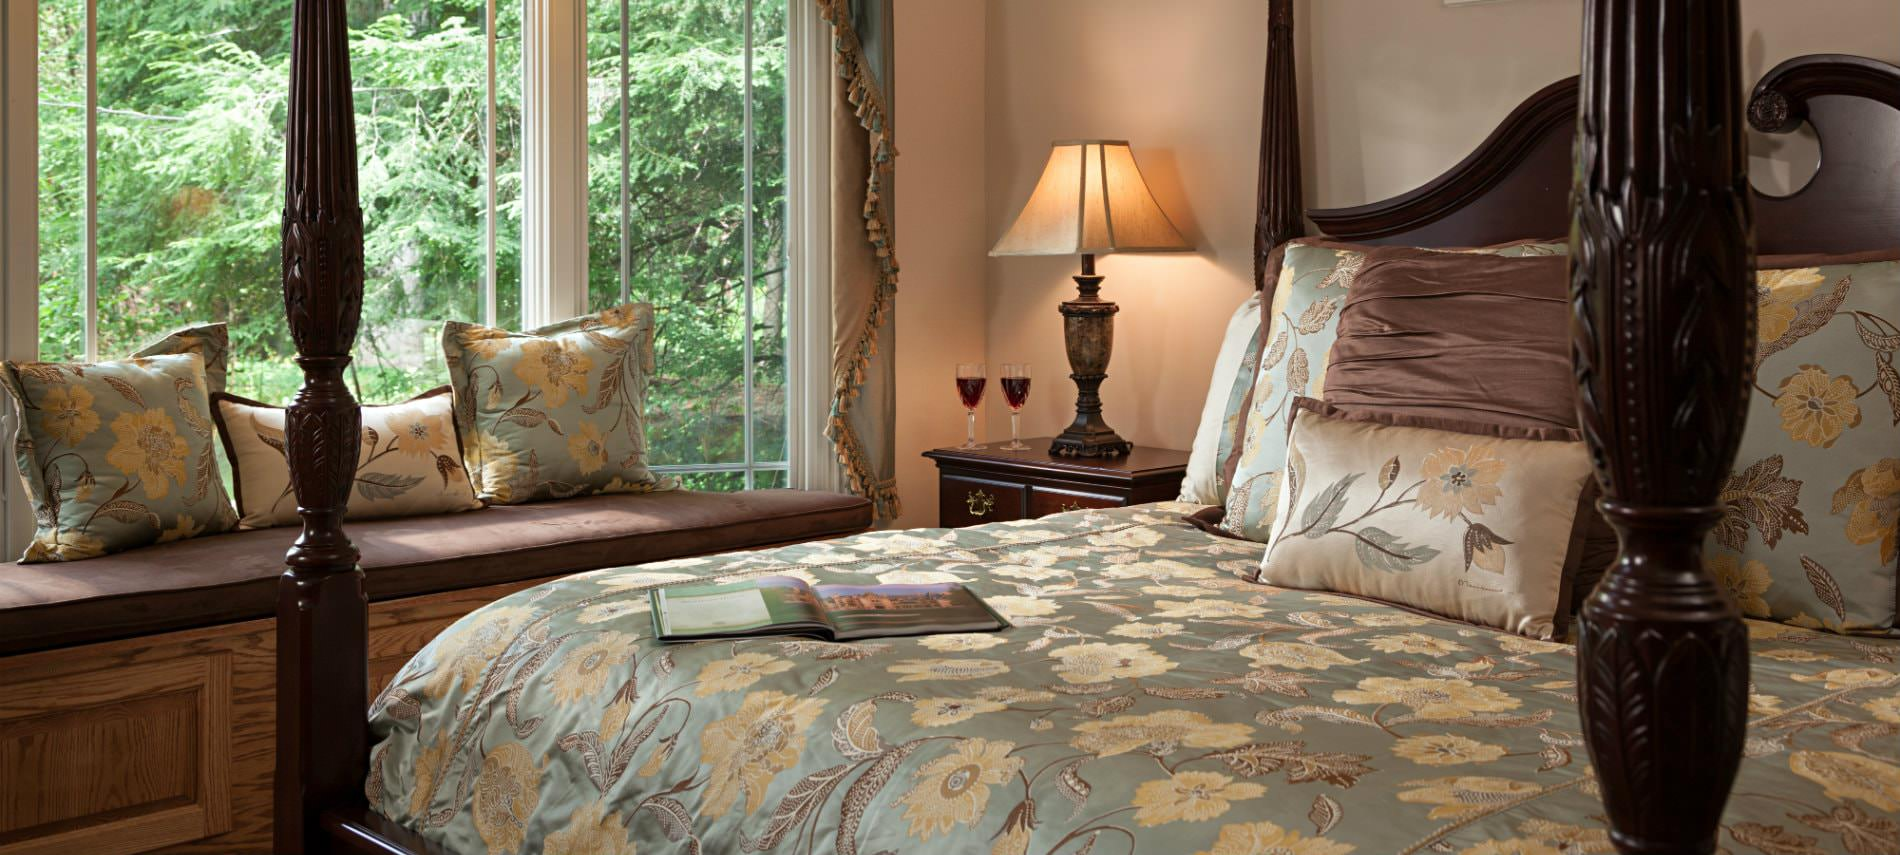 Elegant guest room, four poster bed with light blue and cream bedding, large window with window seat